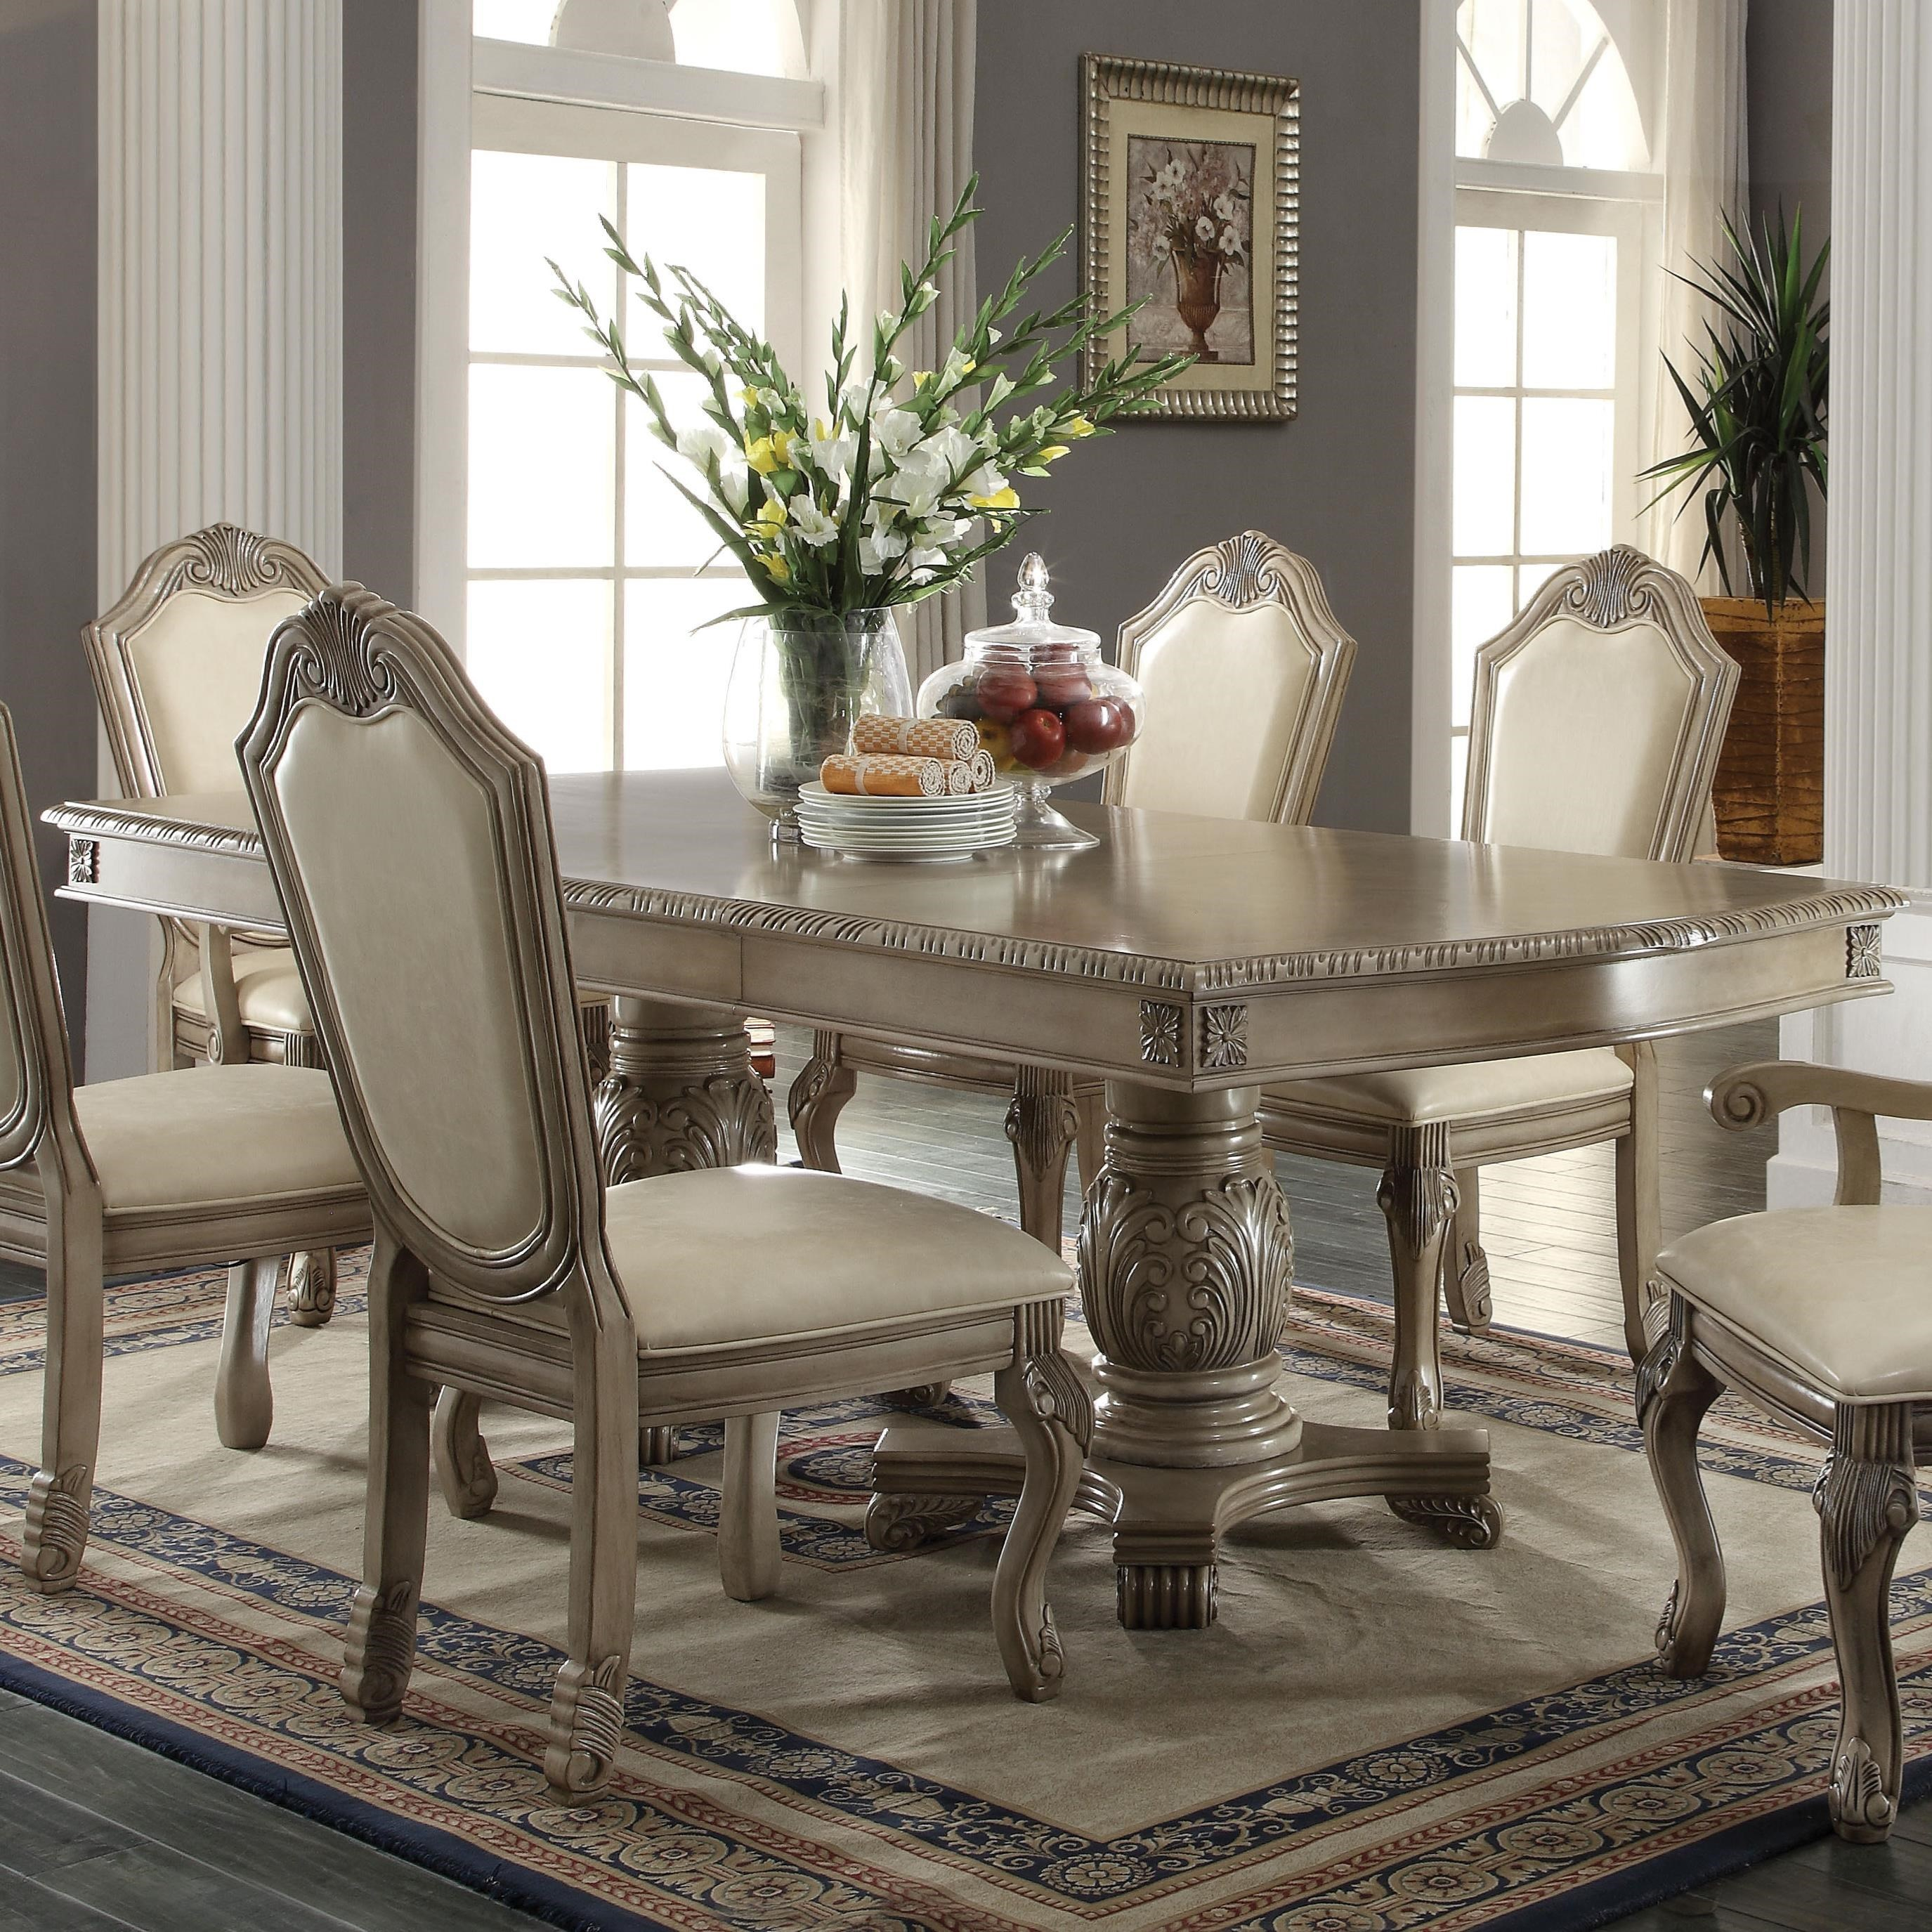 Chateau De Ville Dining Table by Acme Furniture at Carolina Direct